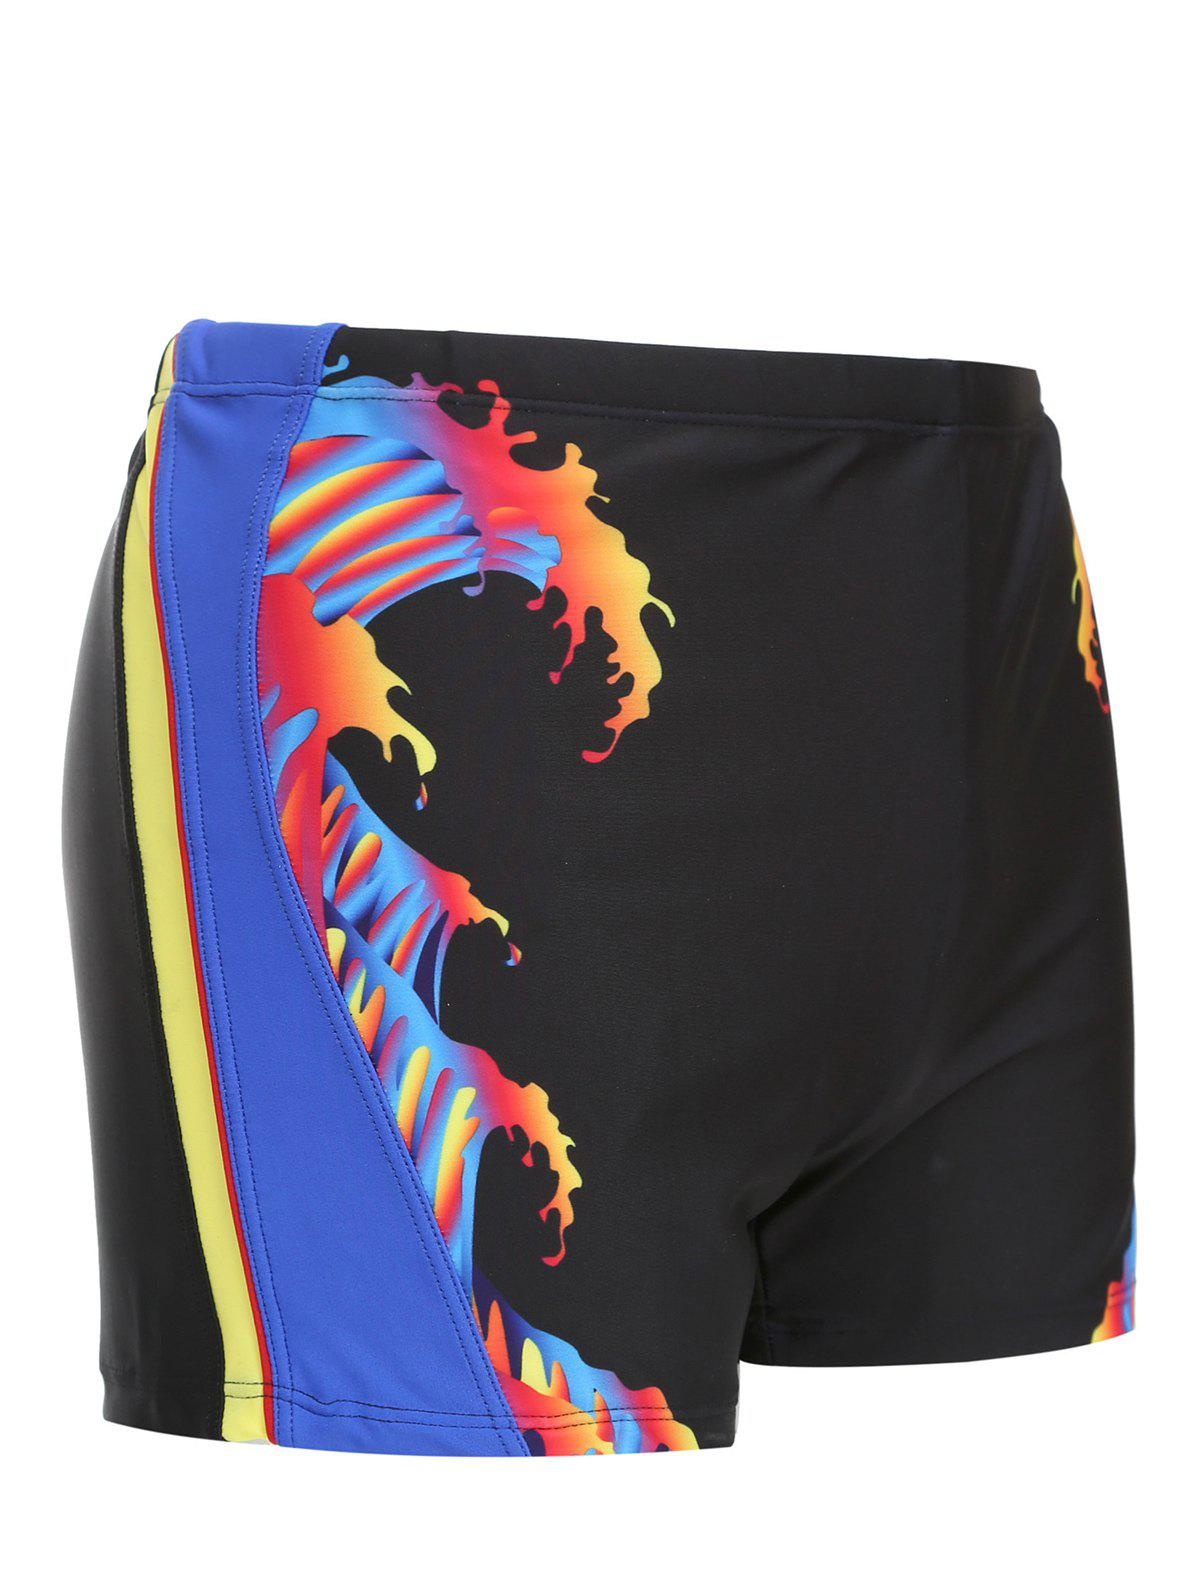 Men's Color Block Mid-Rised Swimming Trunks